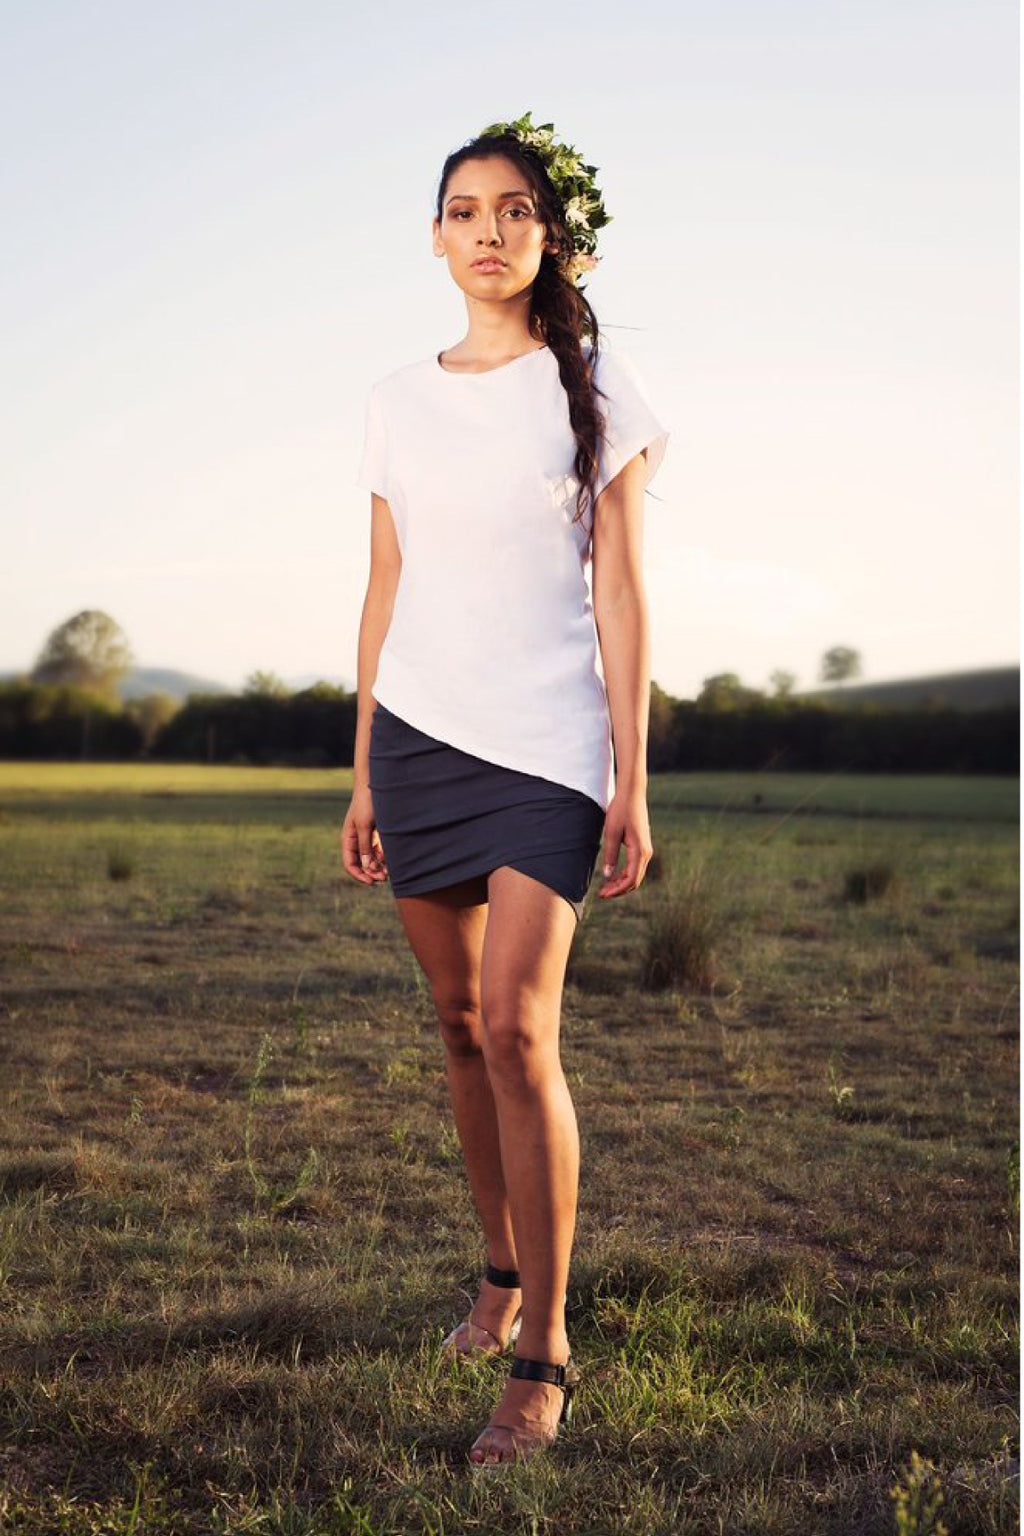 High Road T-Shirt Shirts + tops Ethical Sustainable Vegan Organic Australian fashion womens clothes